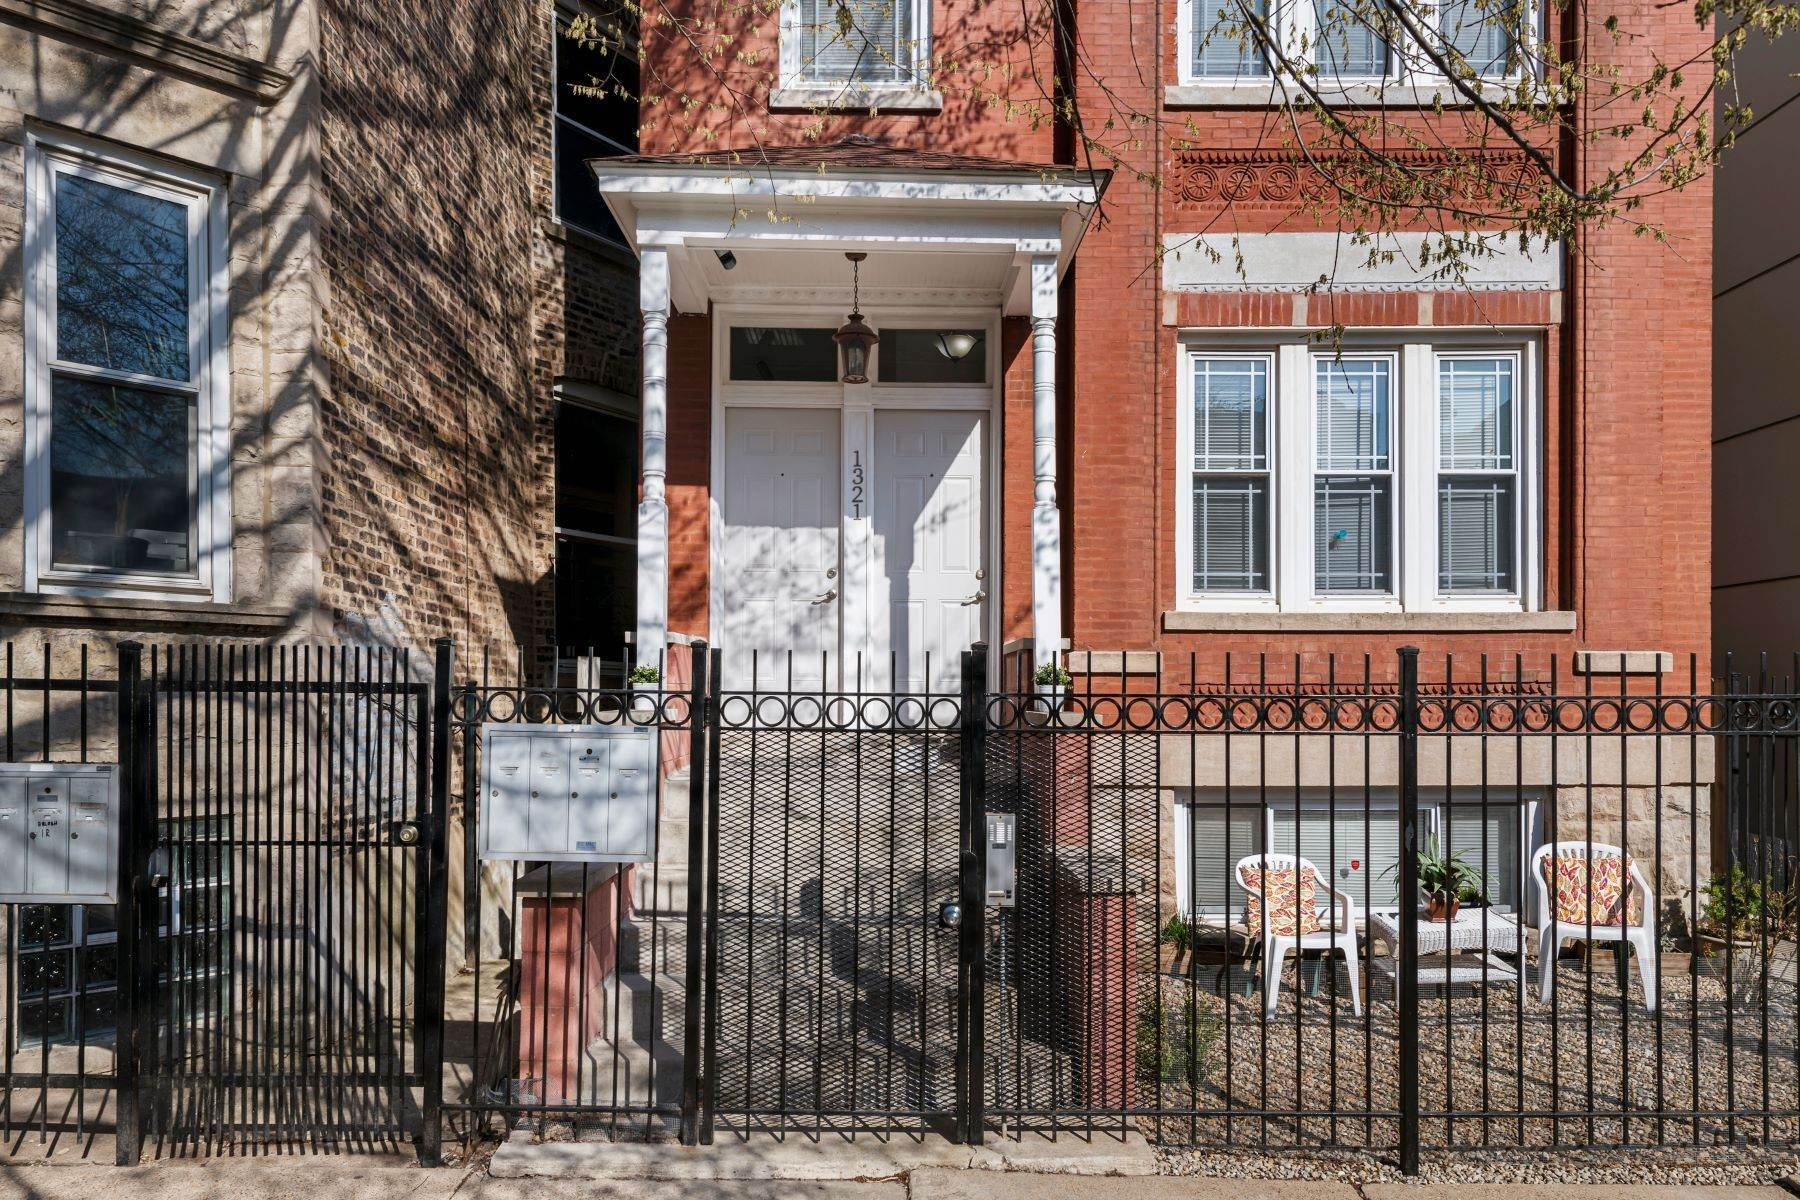 Property for Sale at Best Kept Multi Unit 1321 N Artesian Avenue Chicago, Illinois 60622 United States